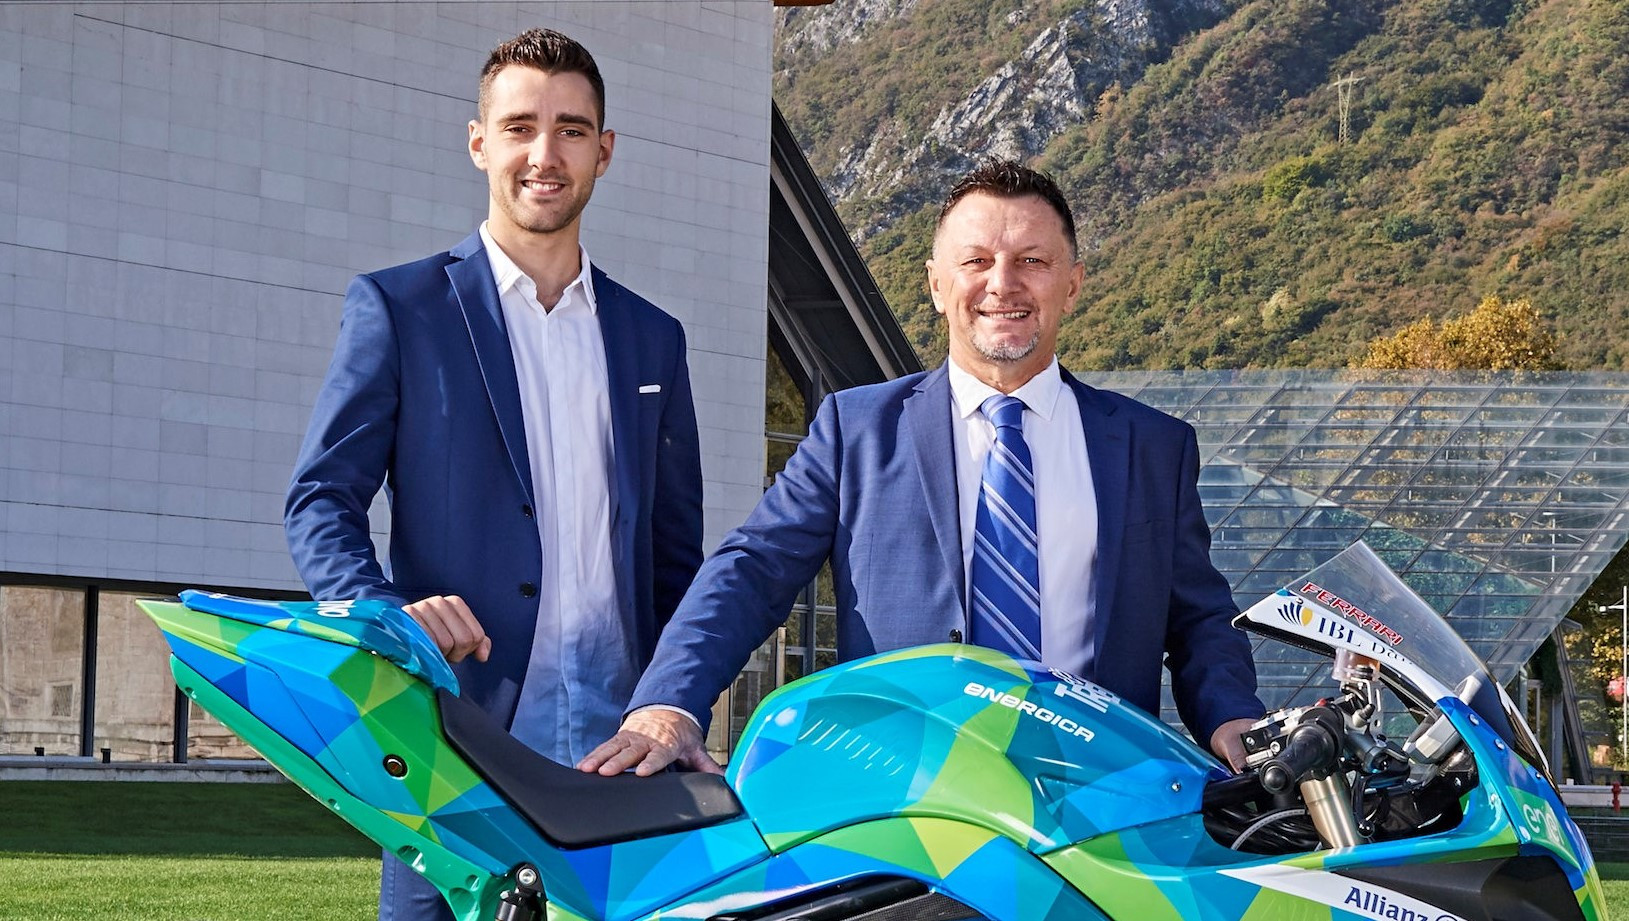 Fausto Gresini (right) with Matteo Ferrari (left) in early 2019. Photo courtesy Gresini Racing.